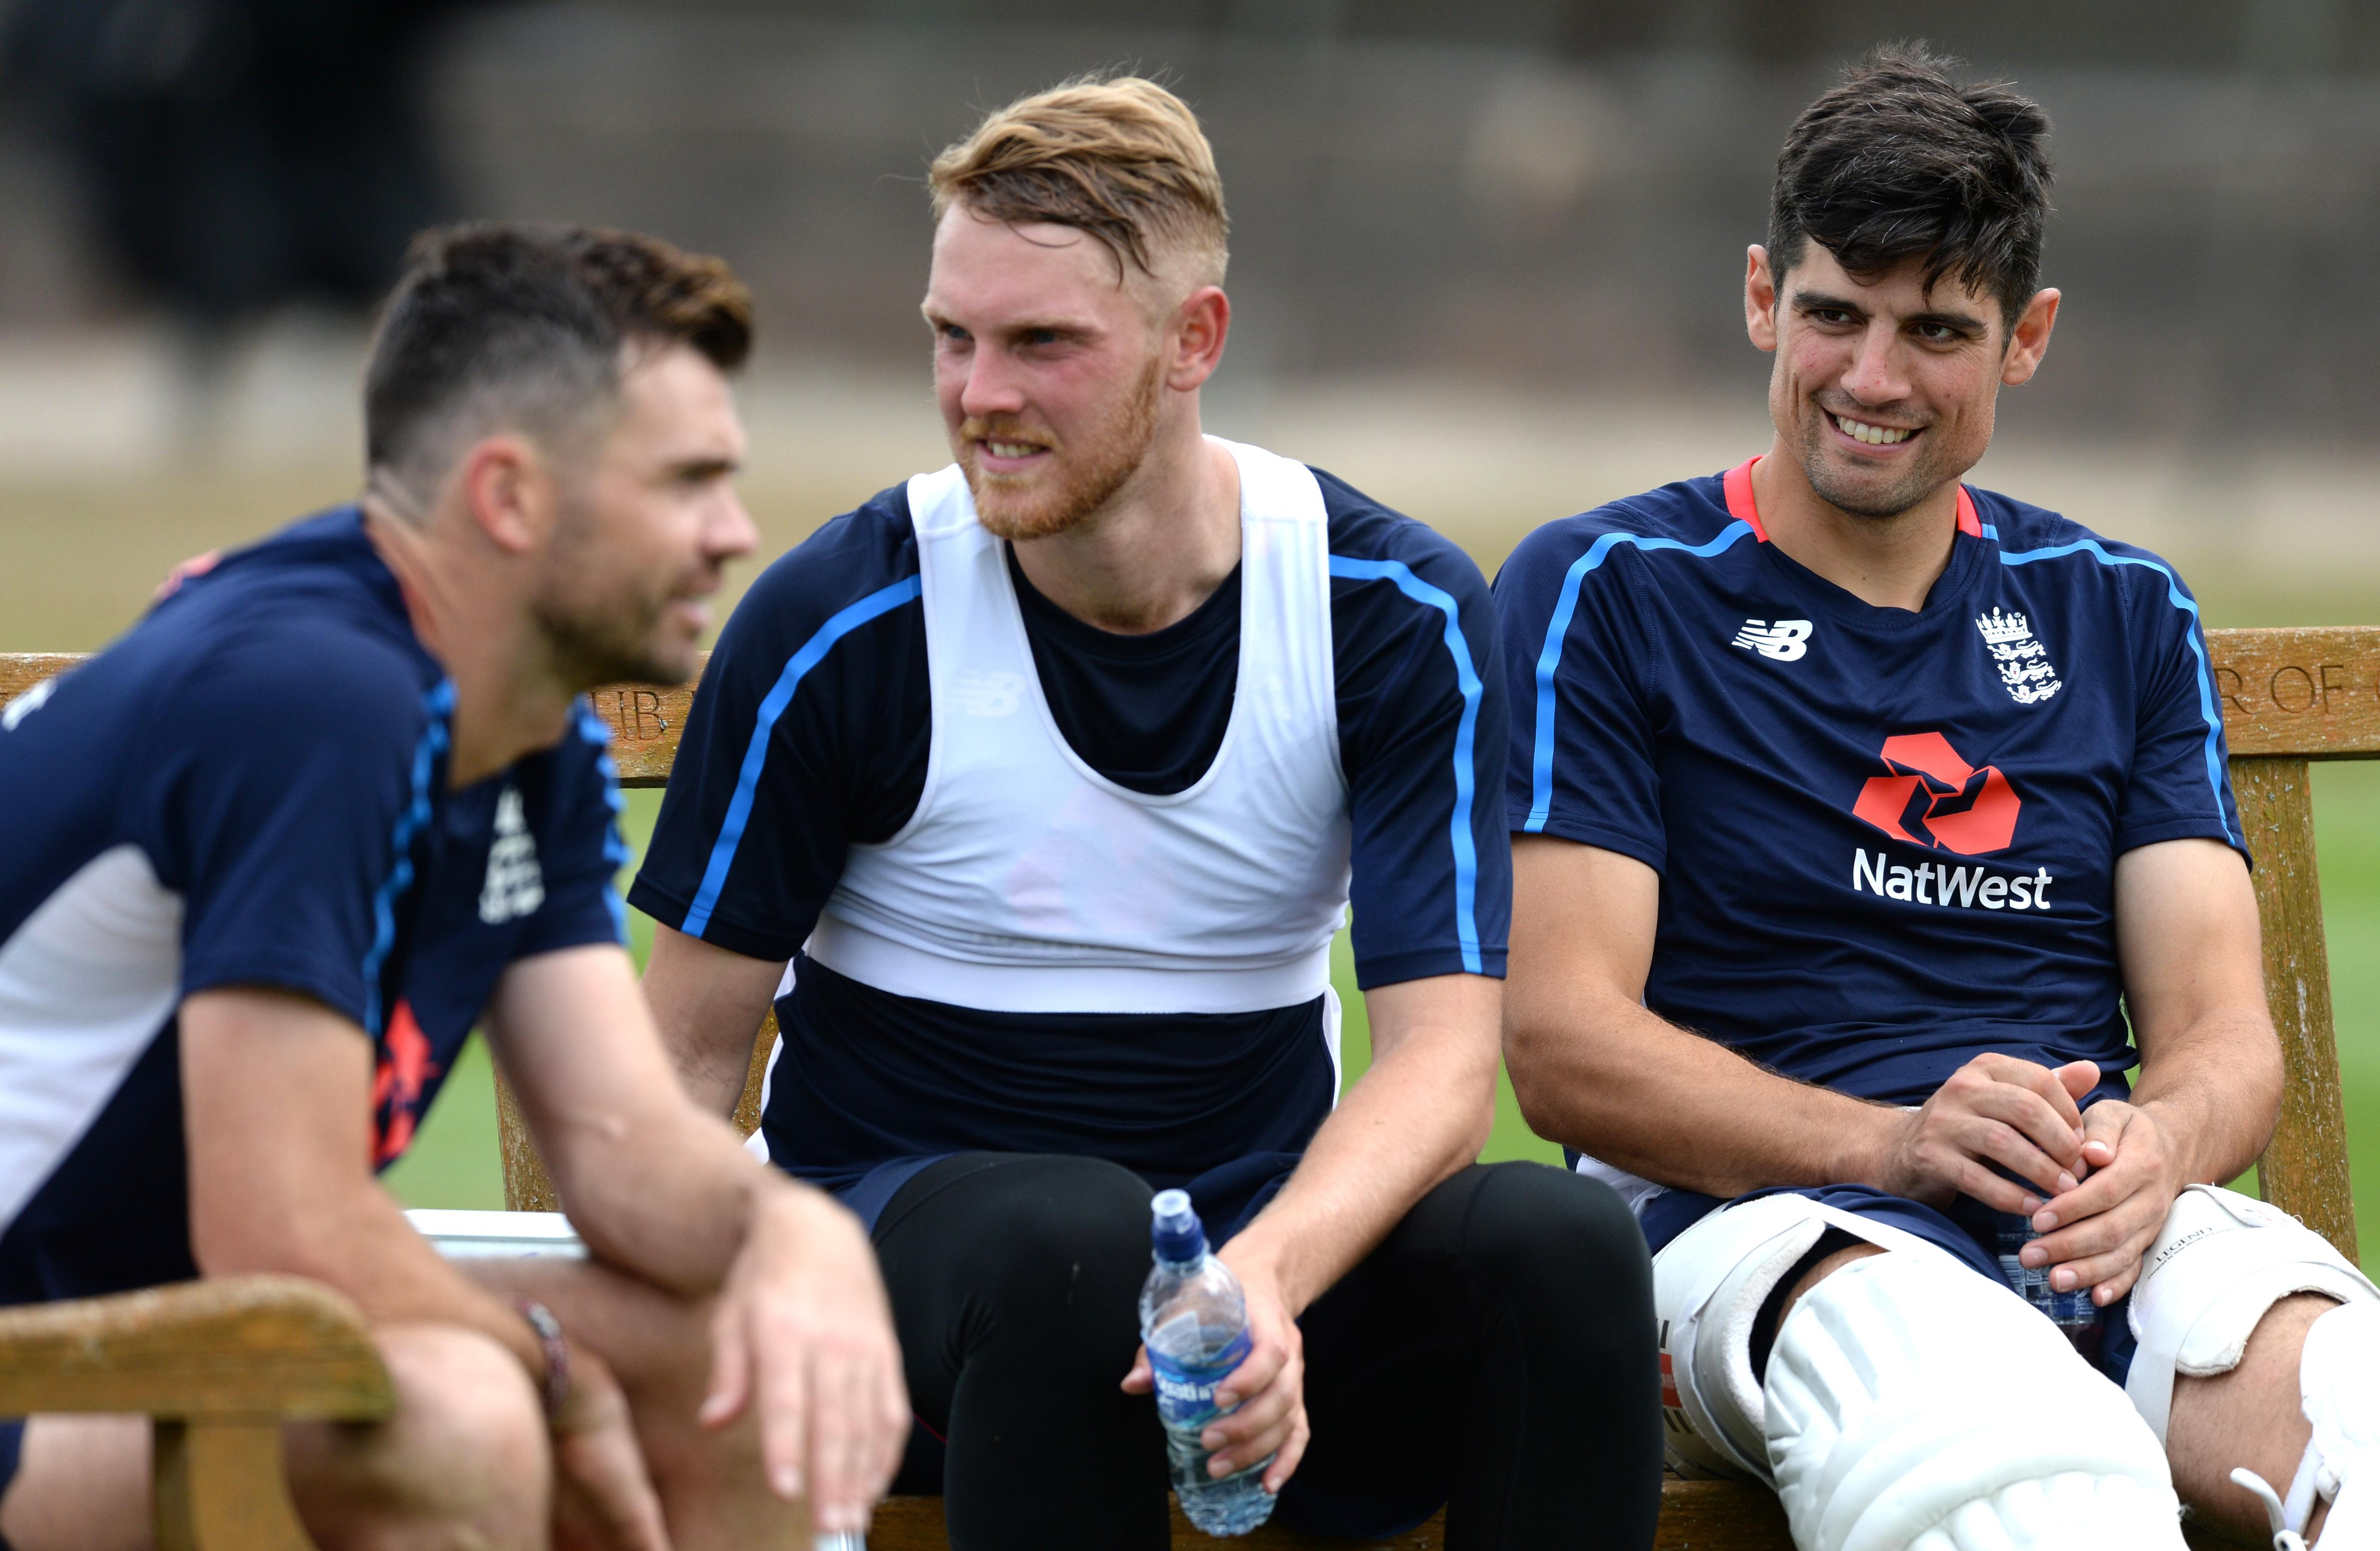 James Anderson will lead the bowling attack against India